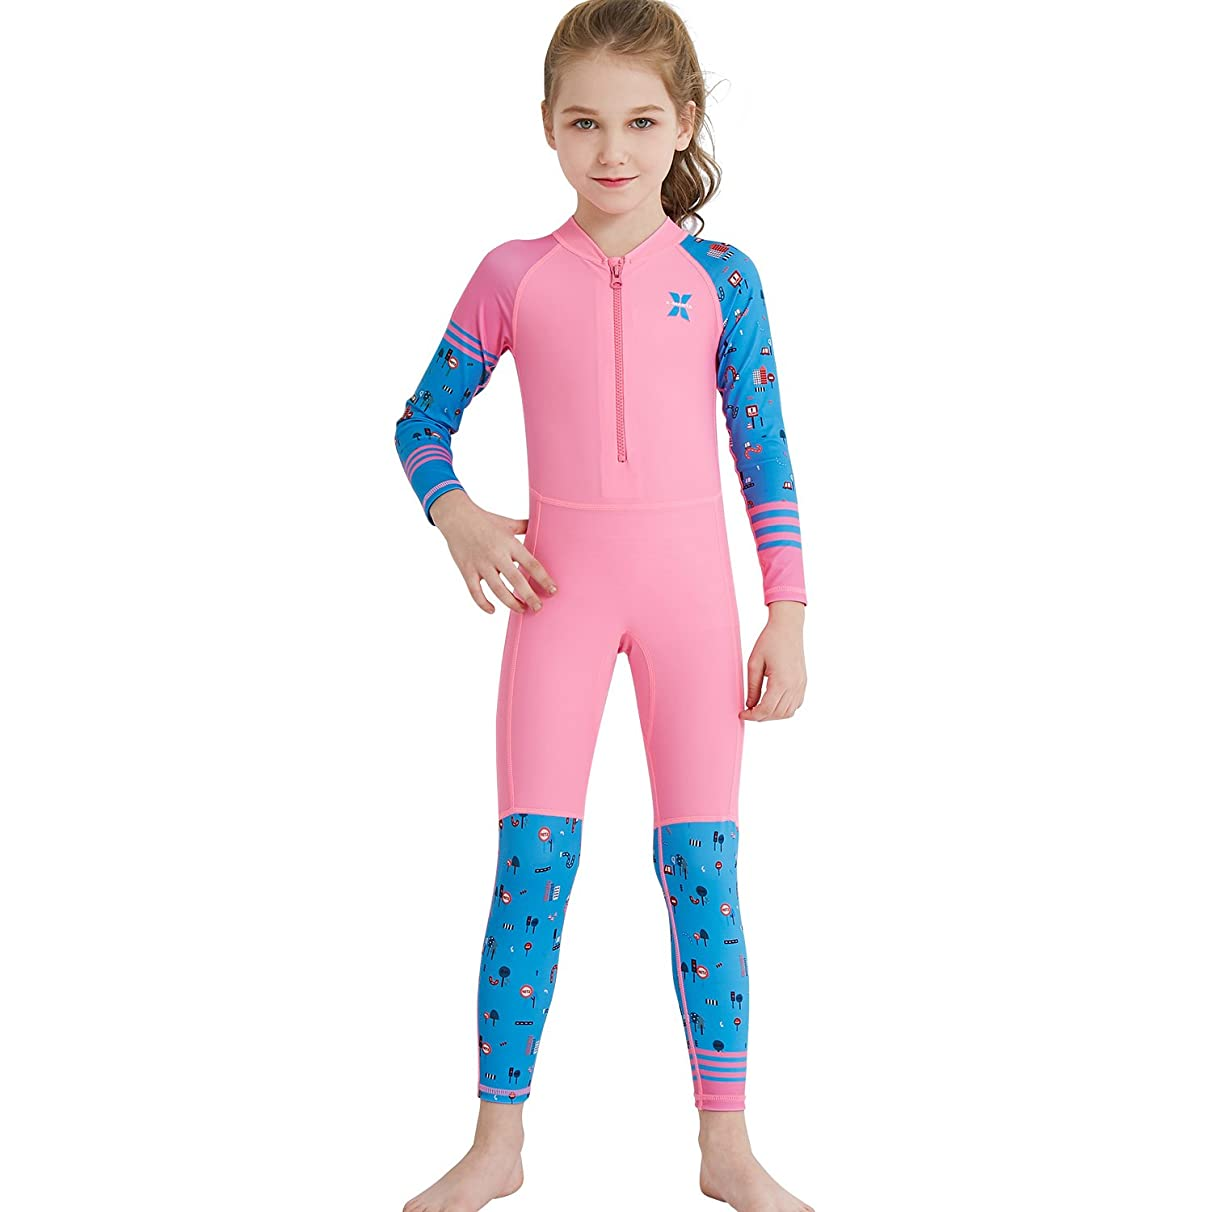 Dark Lightning Kids Rash Guard, Girl's and Boy's One Piece Swimming Suit for Snorkeling and Pool Multi Water Sports Sun Protection UPF 50+, Long Sleeves Full Suit Swimsuit Jumper Suit